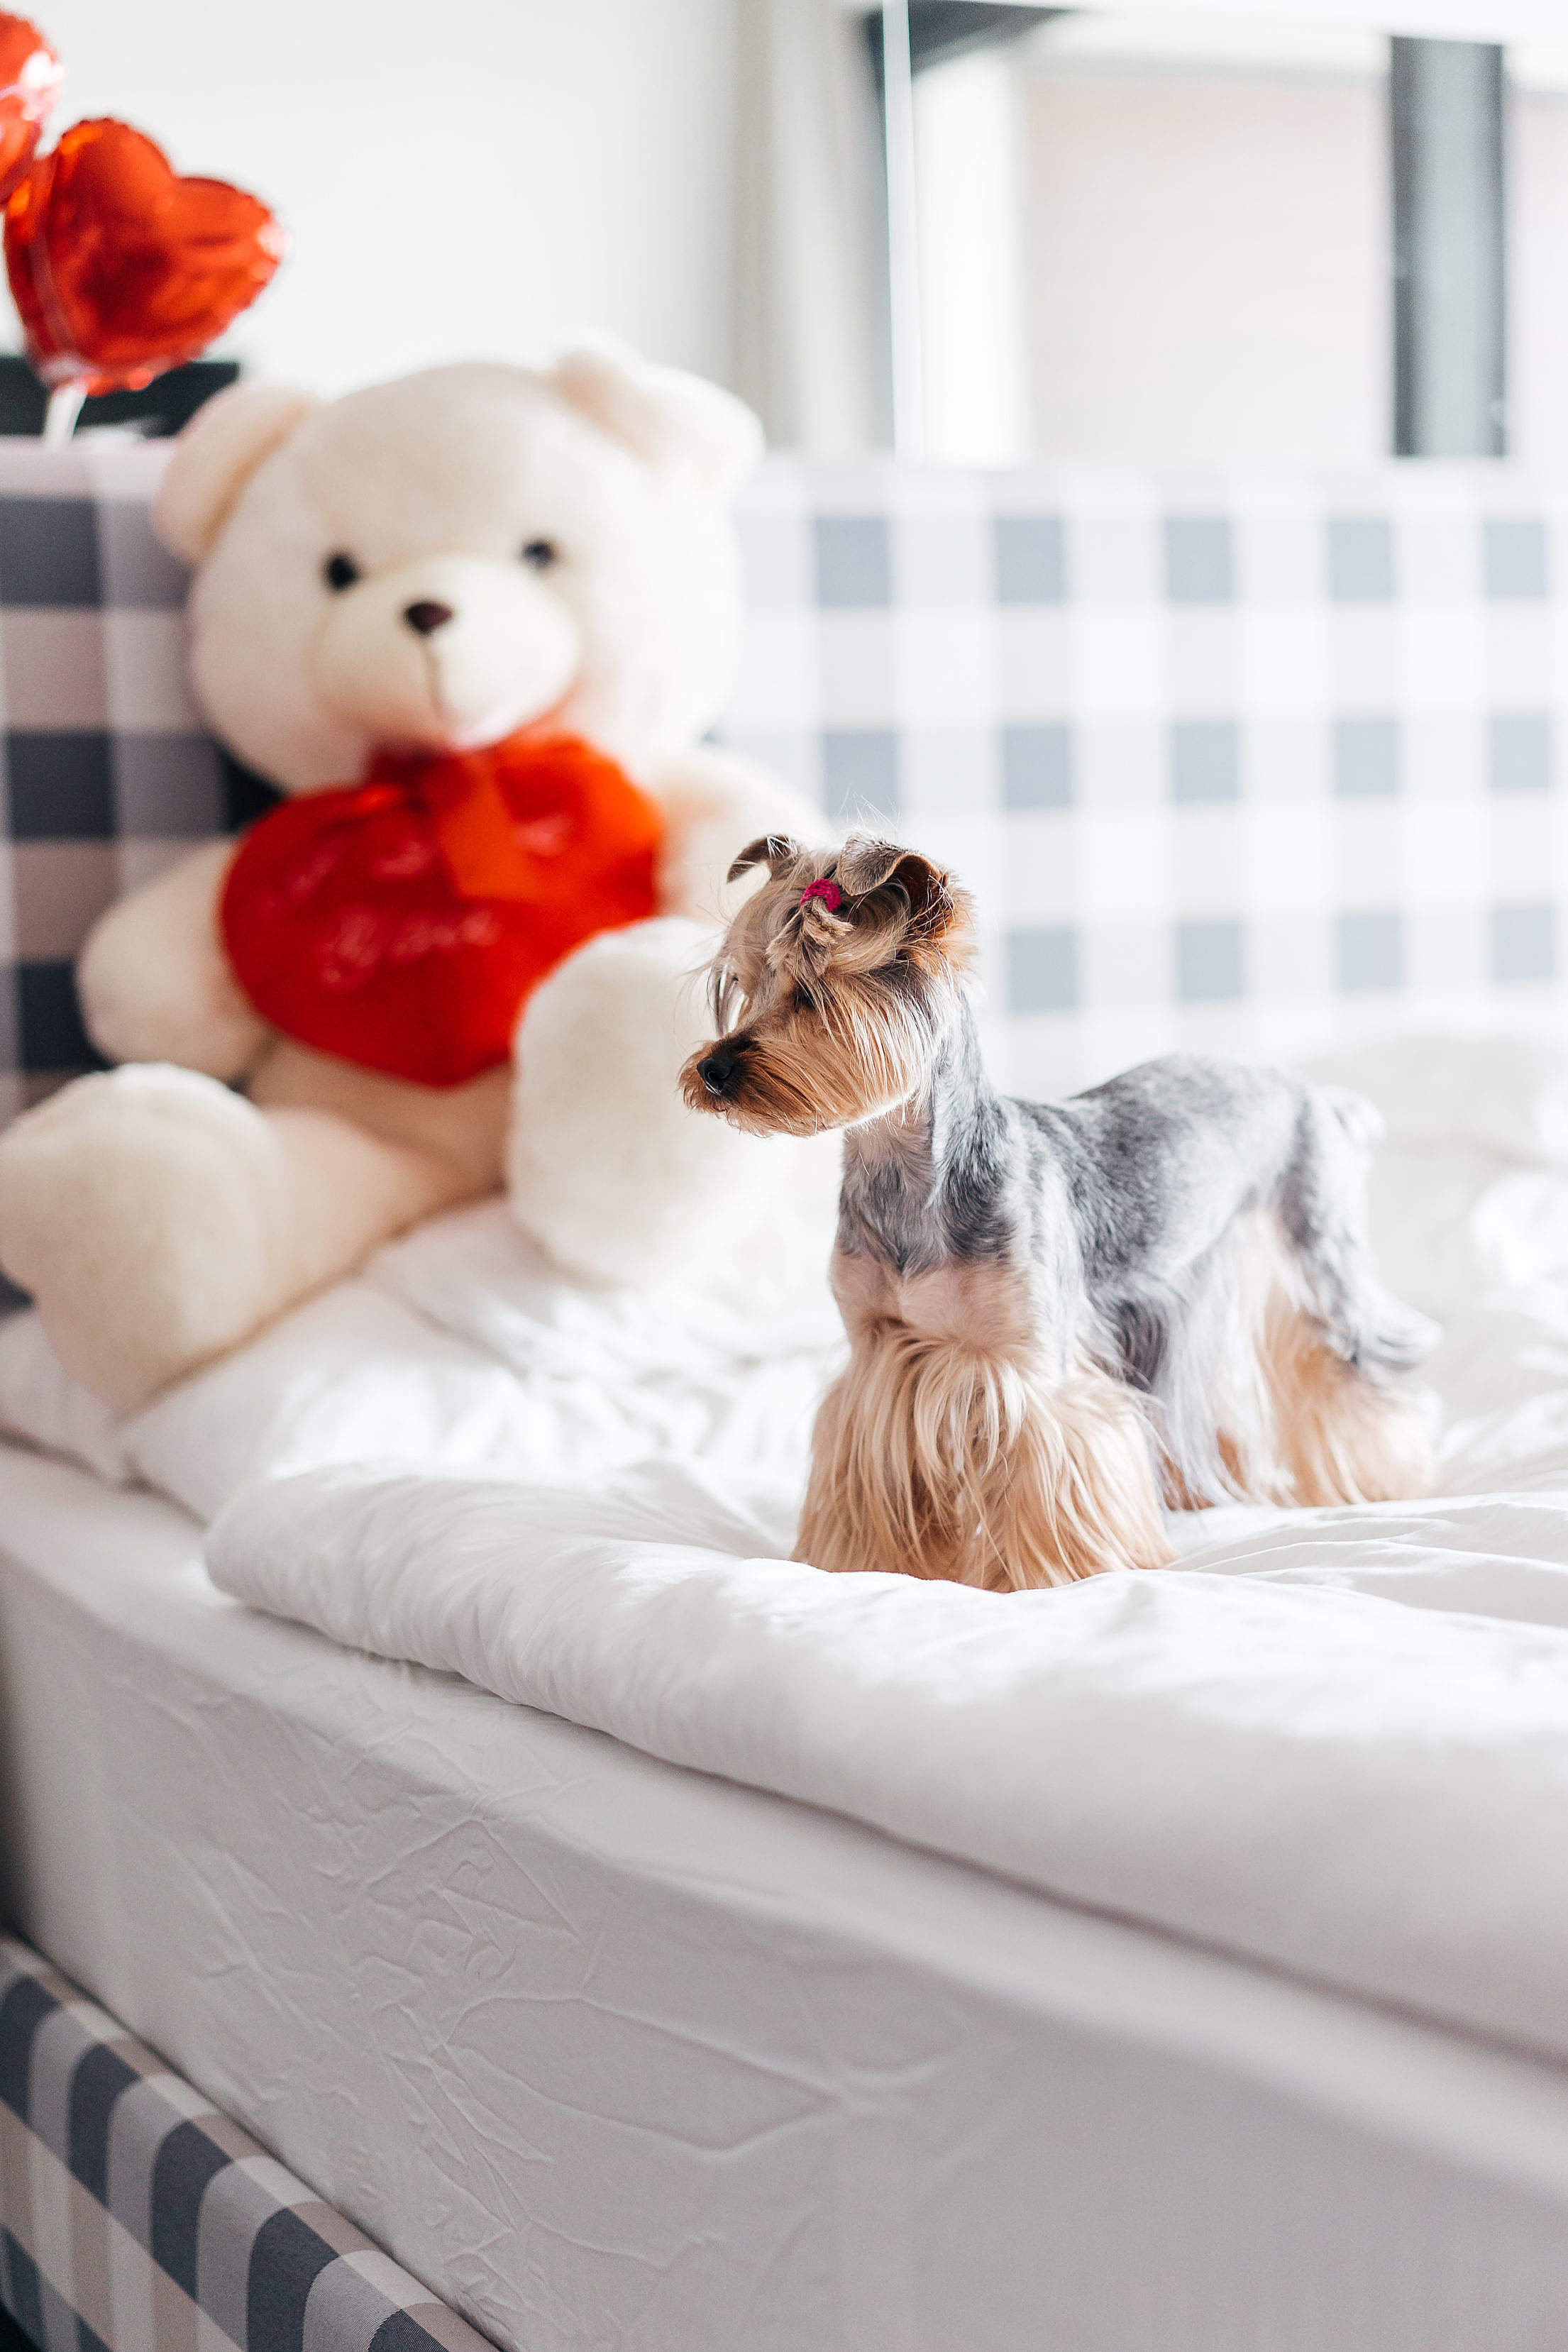 Download Yorkshire Terrier Standing on Bed Free Stock Photo